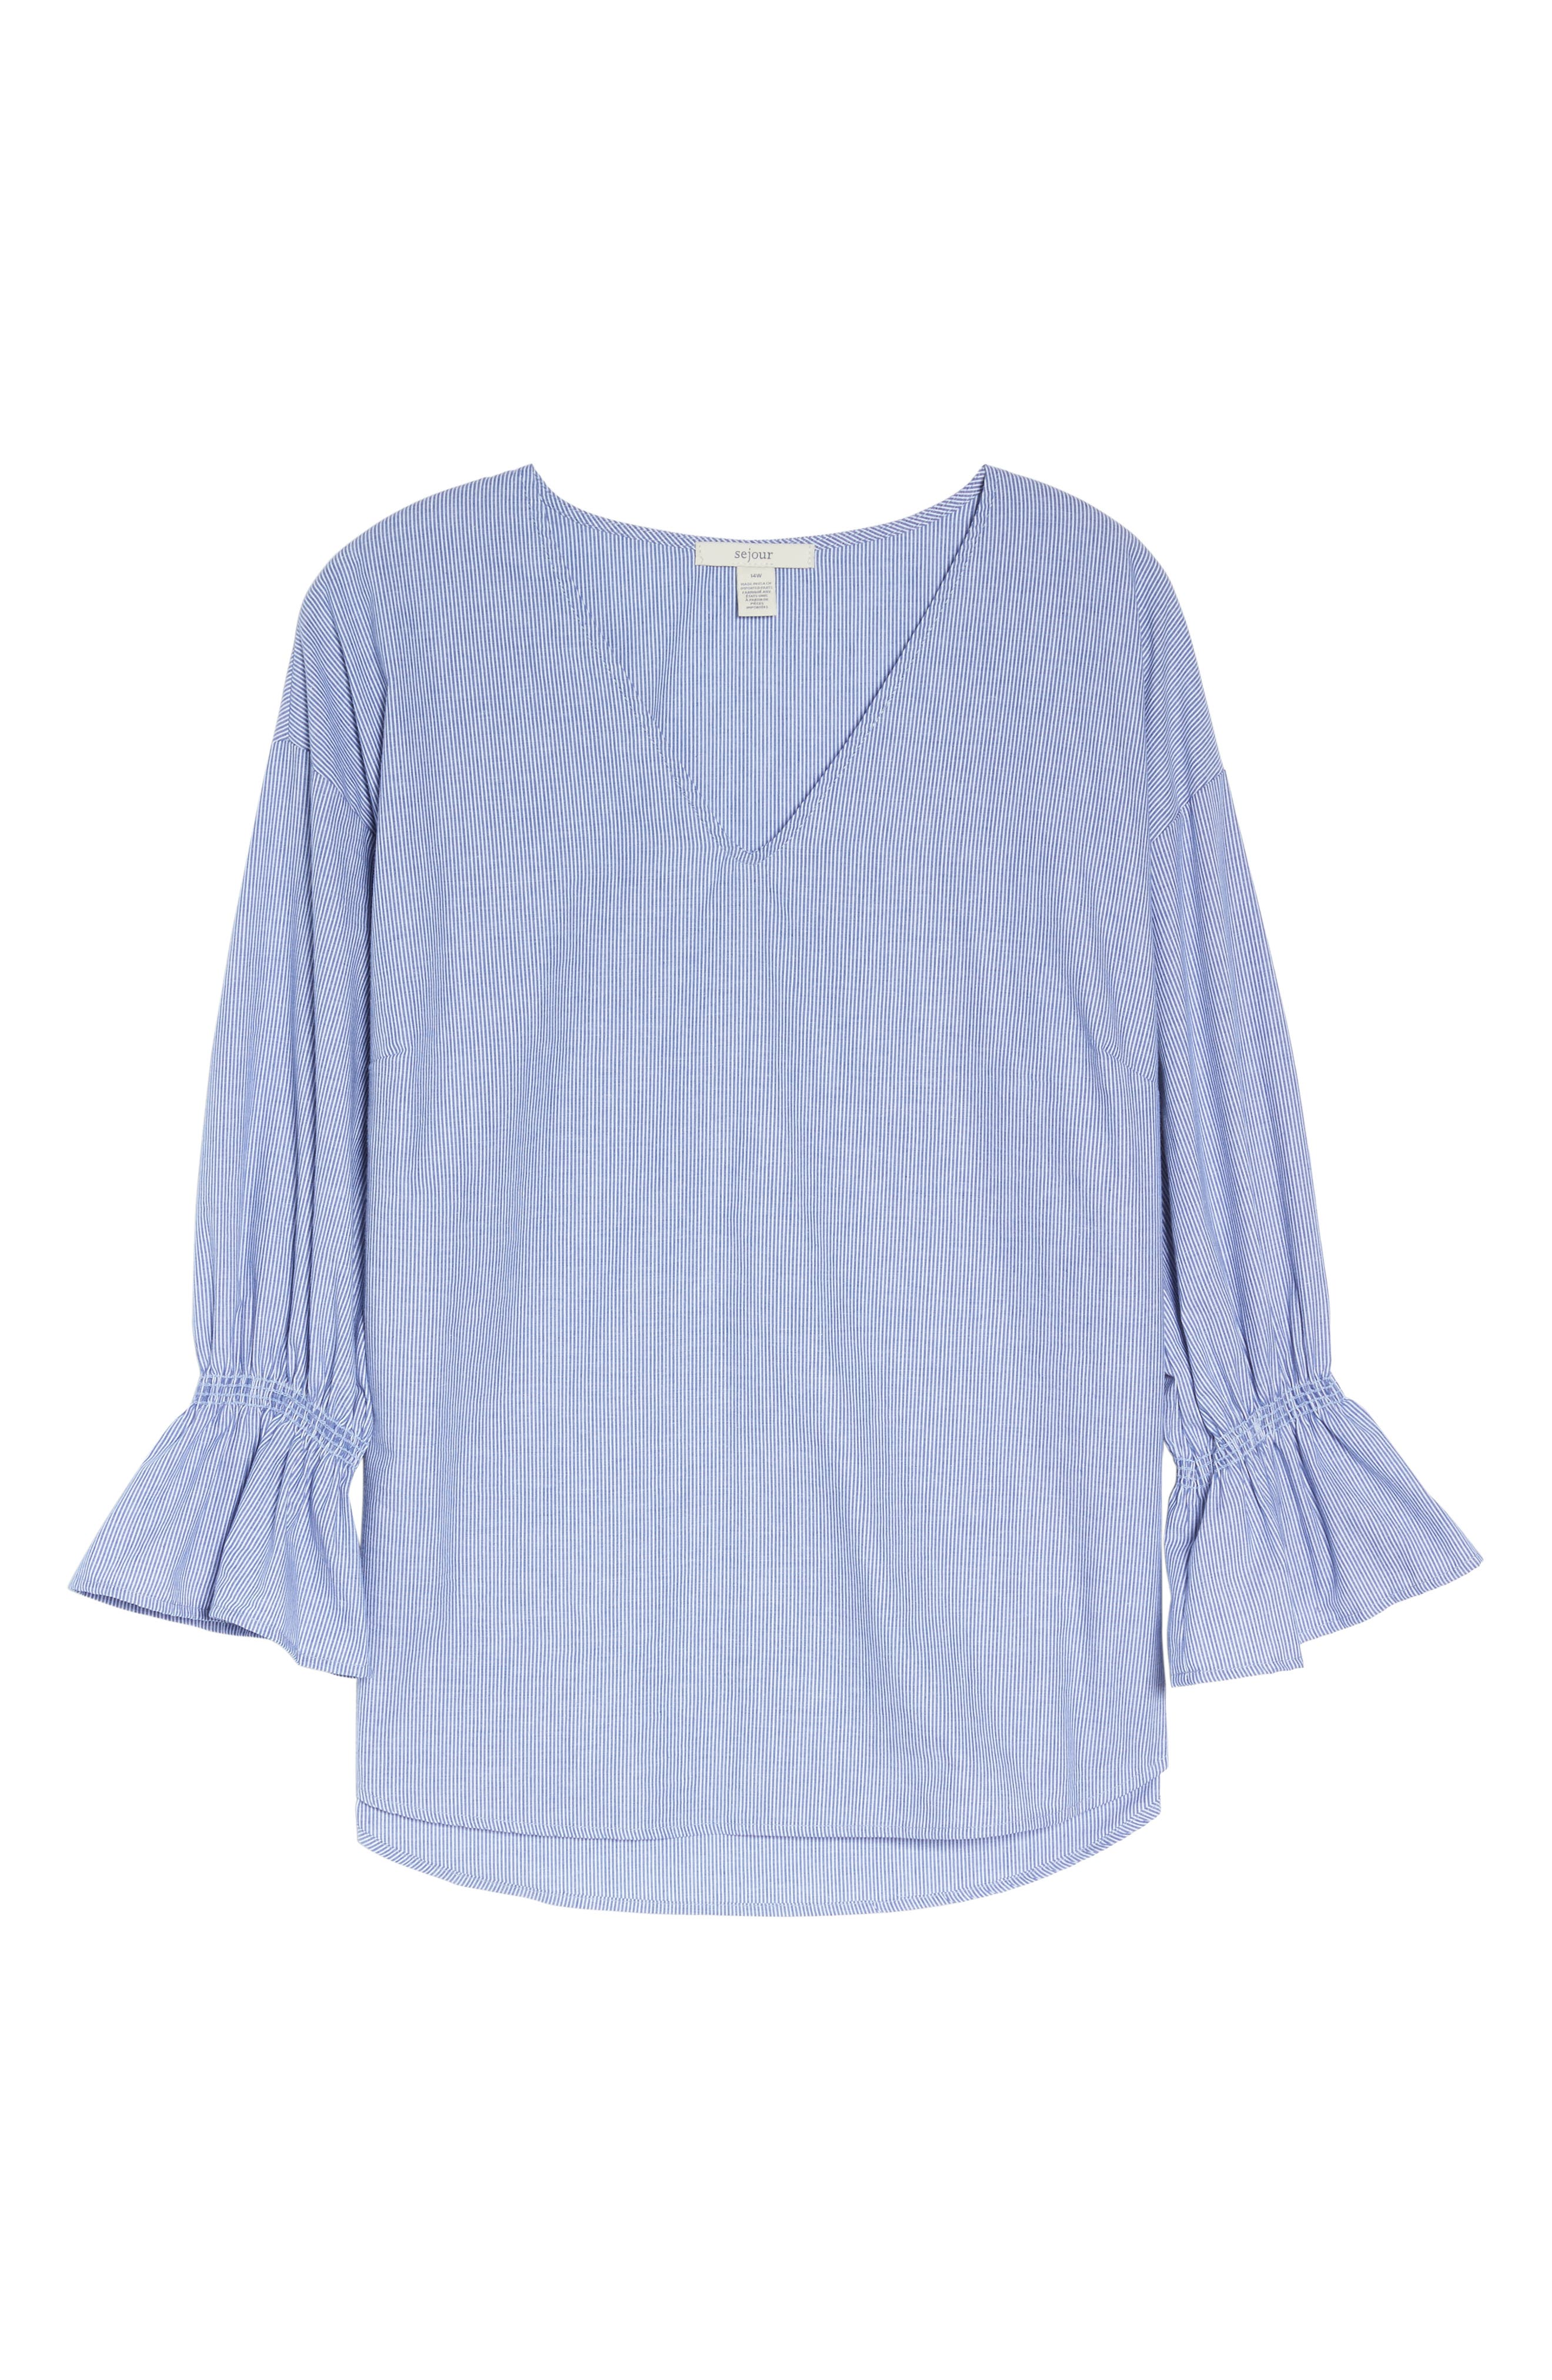 Pinstripe Bell Cuff Top,                             Alternate thumbnail 11, color,